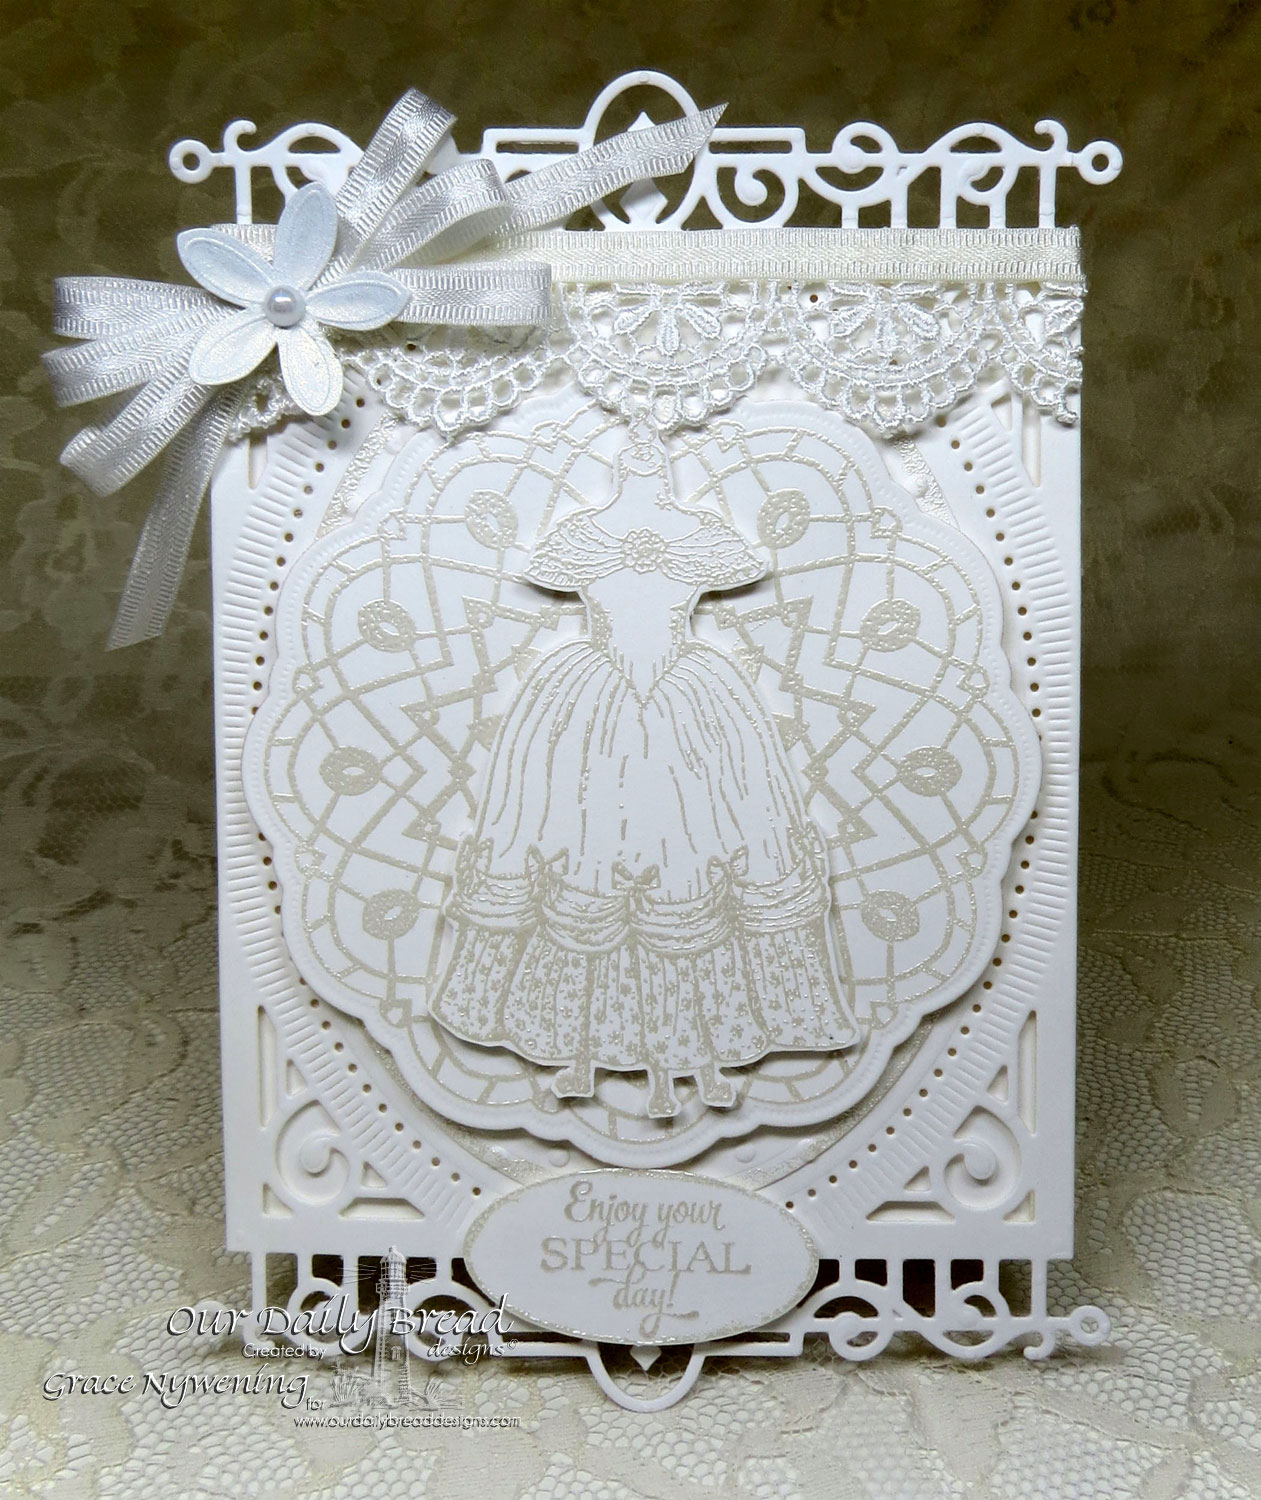 Stamps - Our Daily Bread Designs Victoria, Birthday Doily, Doily Blessings, ODBD Custom Doily Die